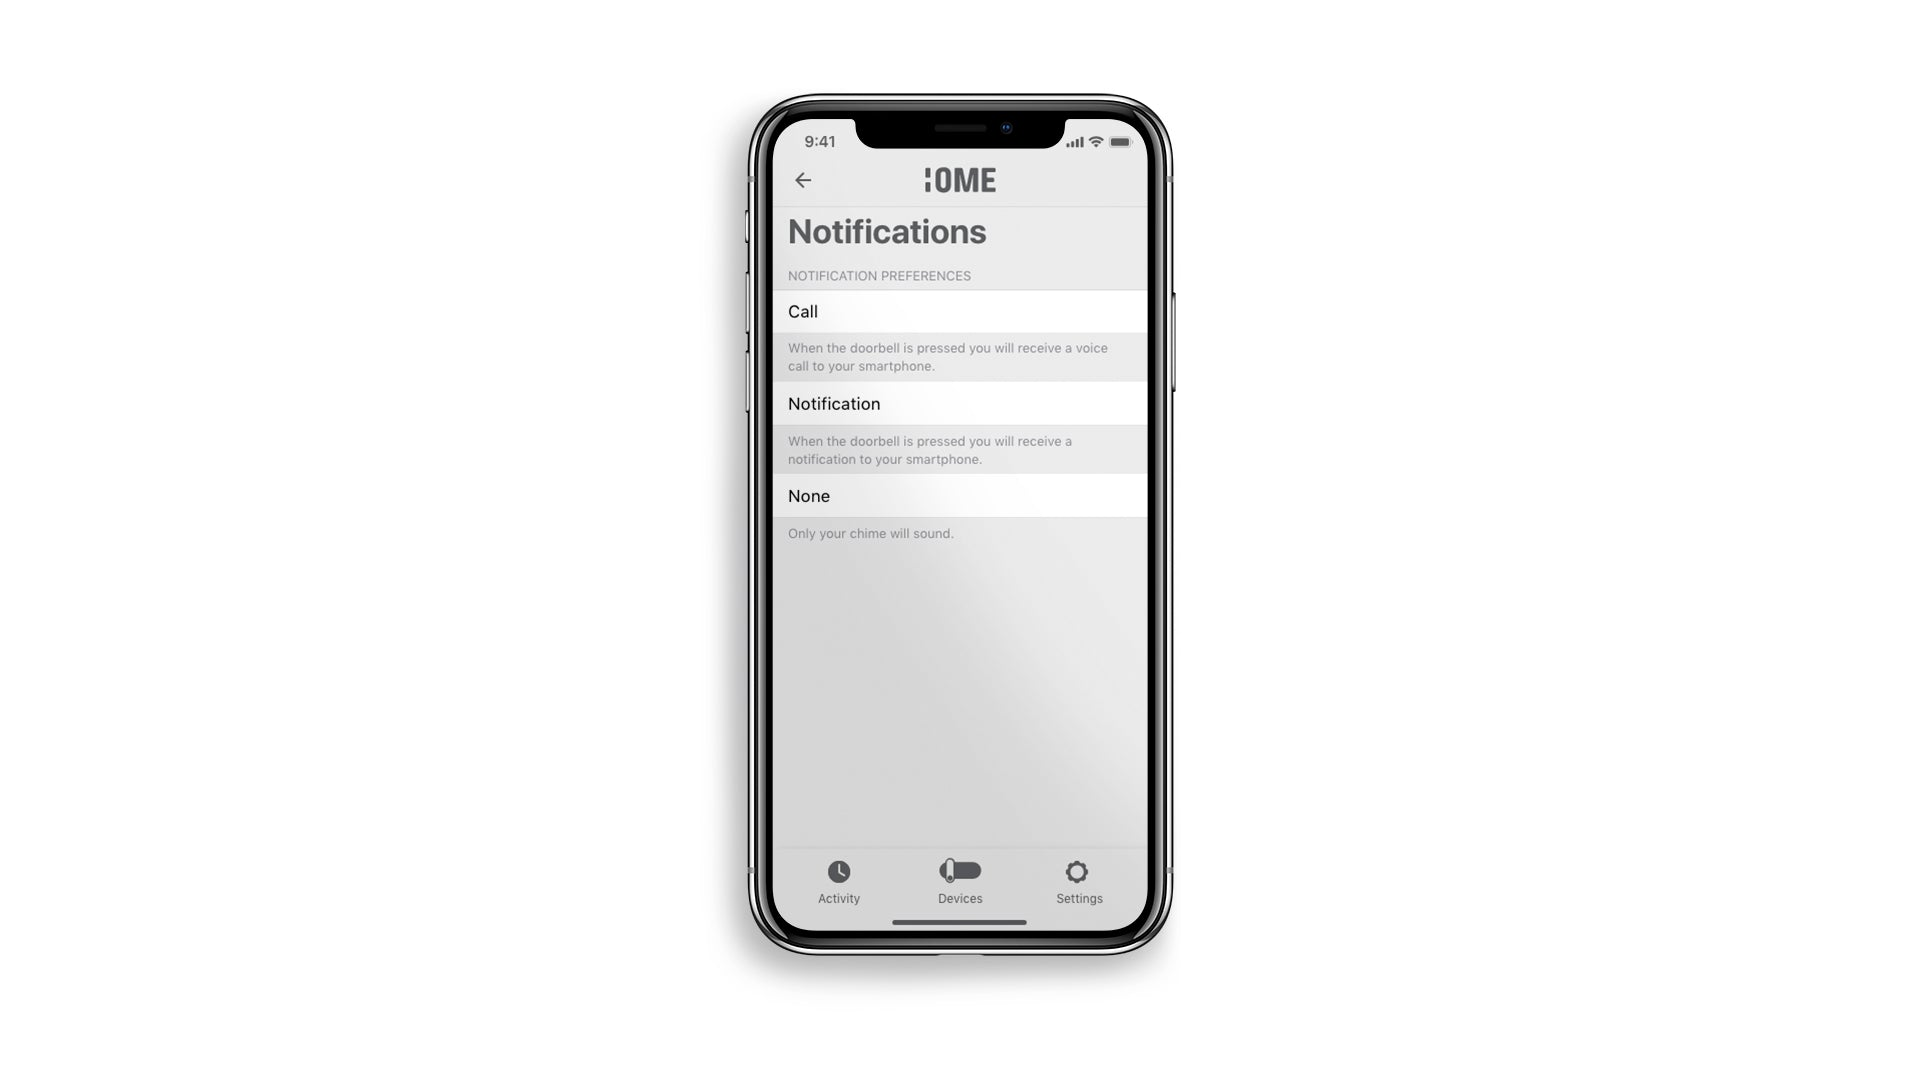 Ome Smart Doorbell Notifications